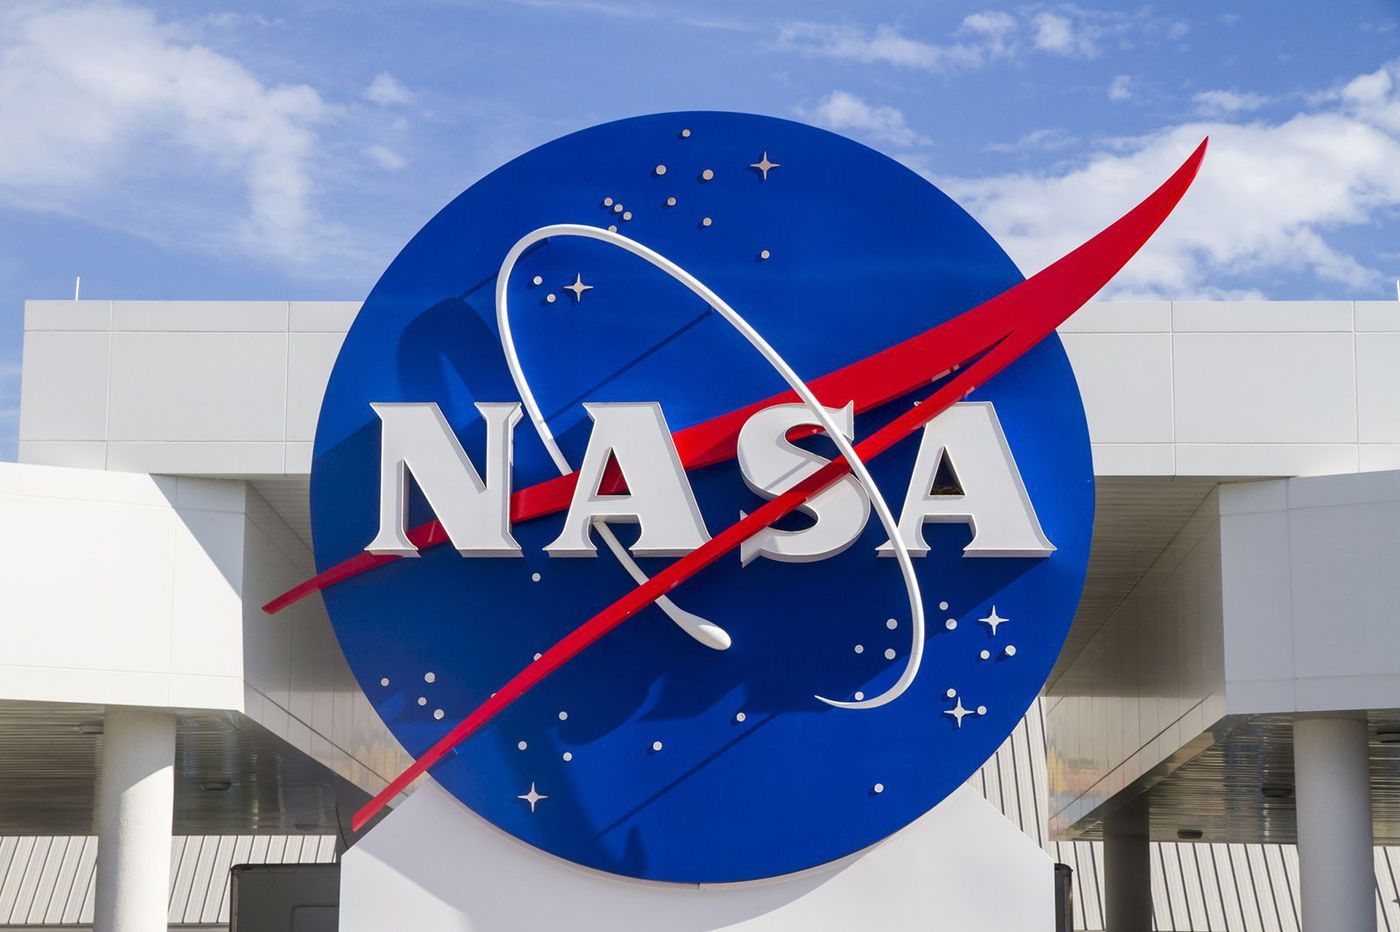 NASA begins hunt for astronauts to take trip to the moon in 2024